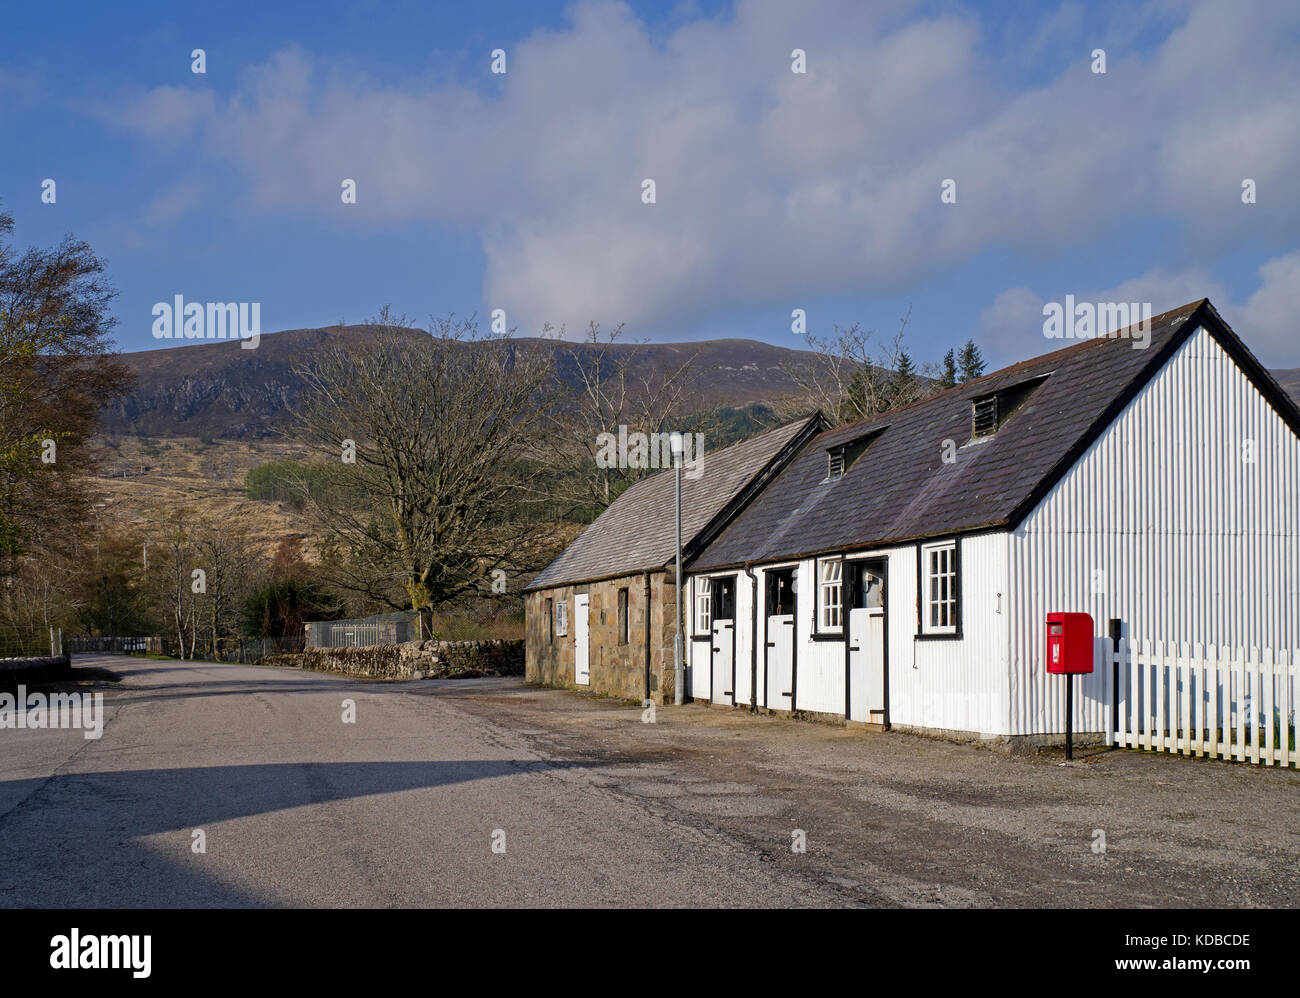 Picturesque old stables next to red post box at Achfary, on the Duke of Westminster's Reay Forest Estate, Sutherland, - Stock Image